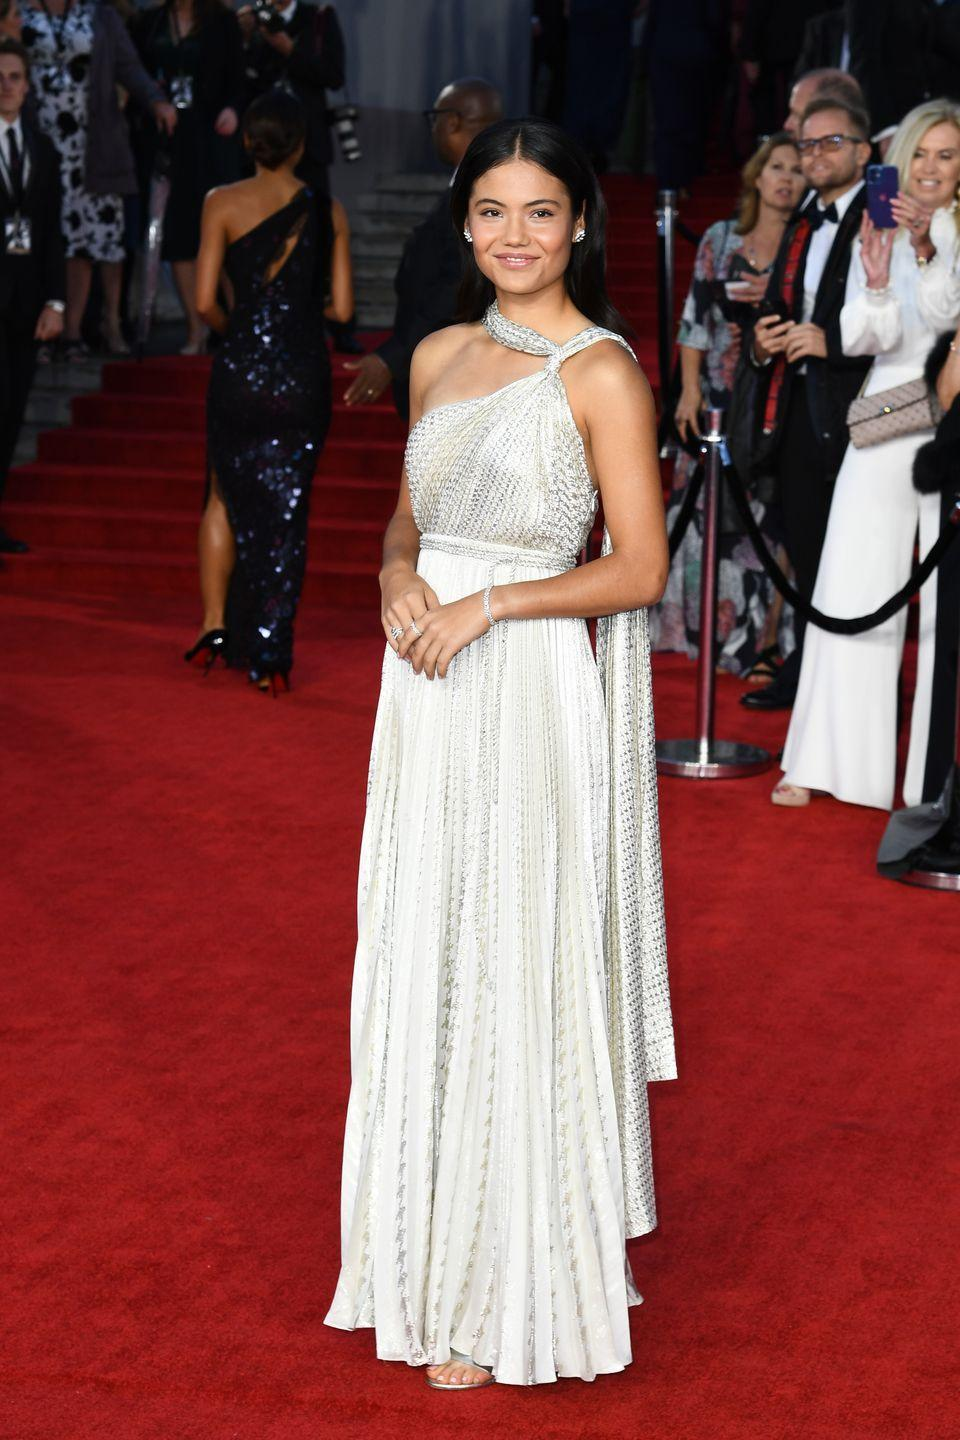 <p>The tennis champion wore a Grecian-style Dior dress and Tiffany & Co jewellery. </p>